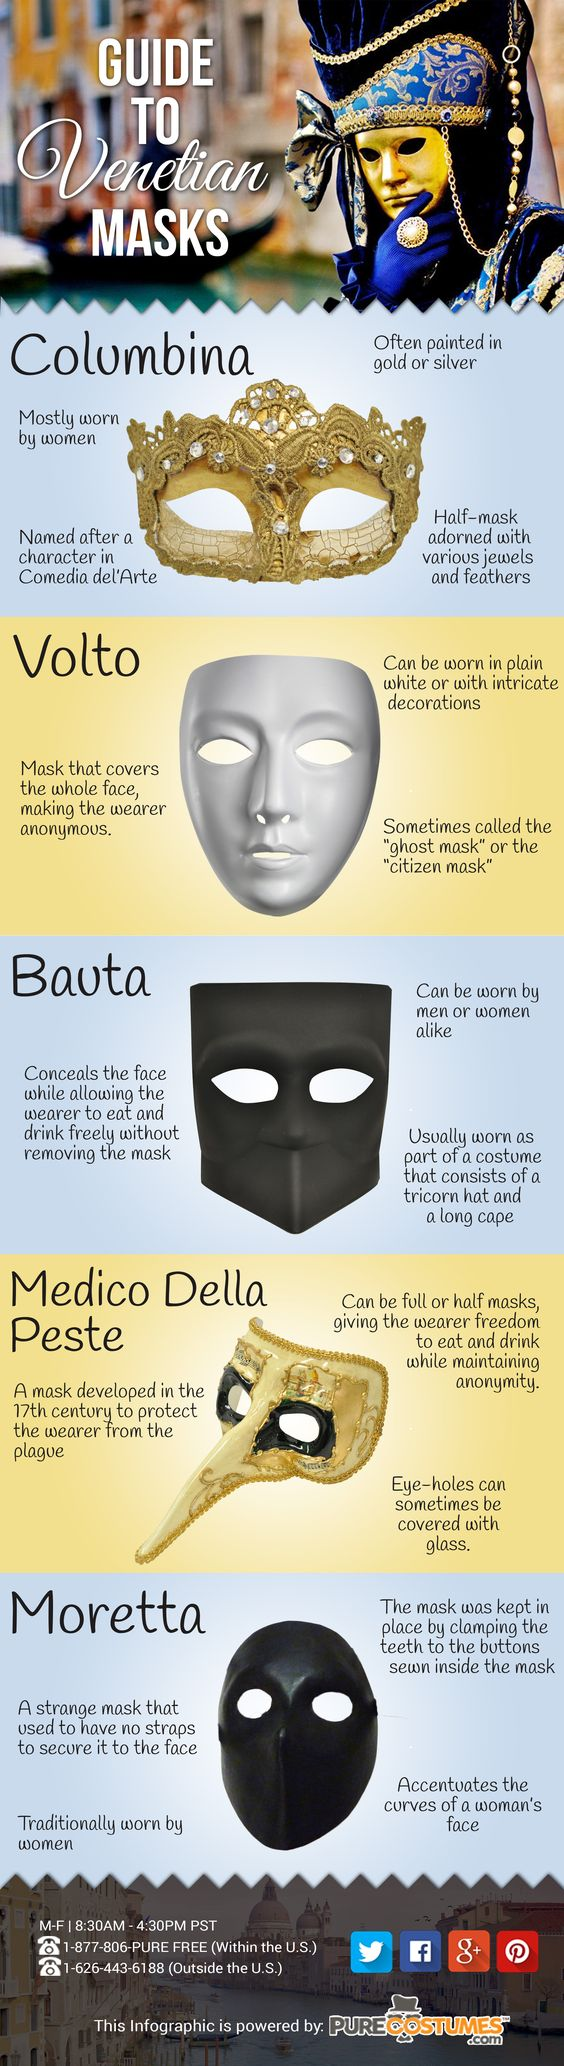 #Infographic: A Guide to Venetian Masks #mardigras                              …: